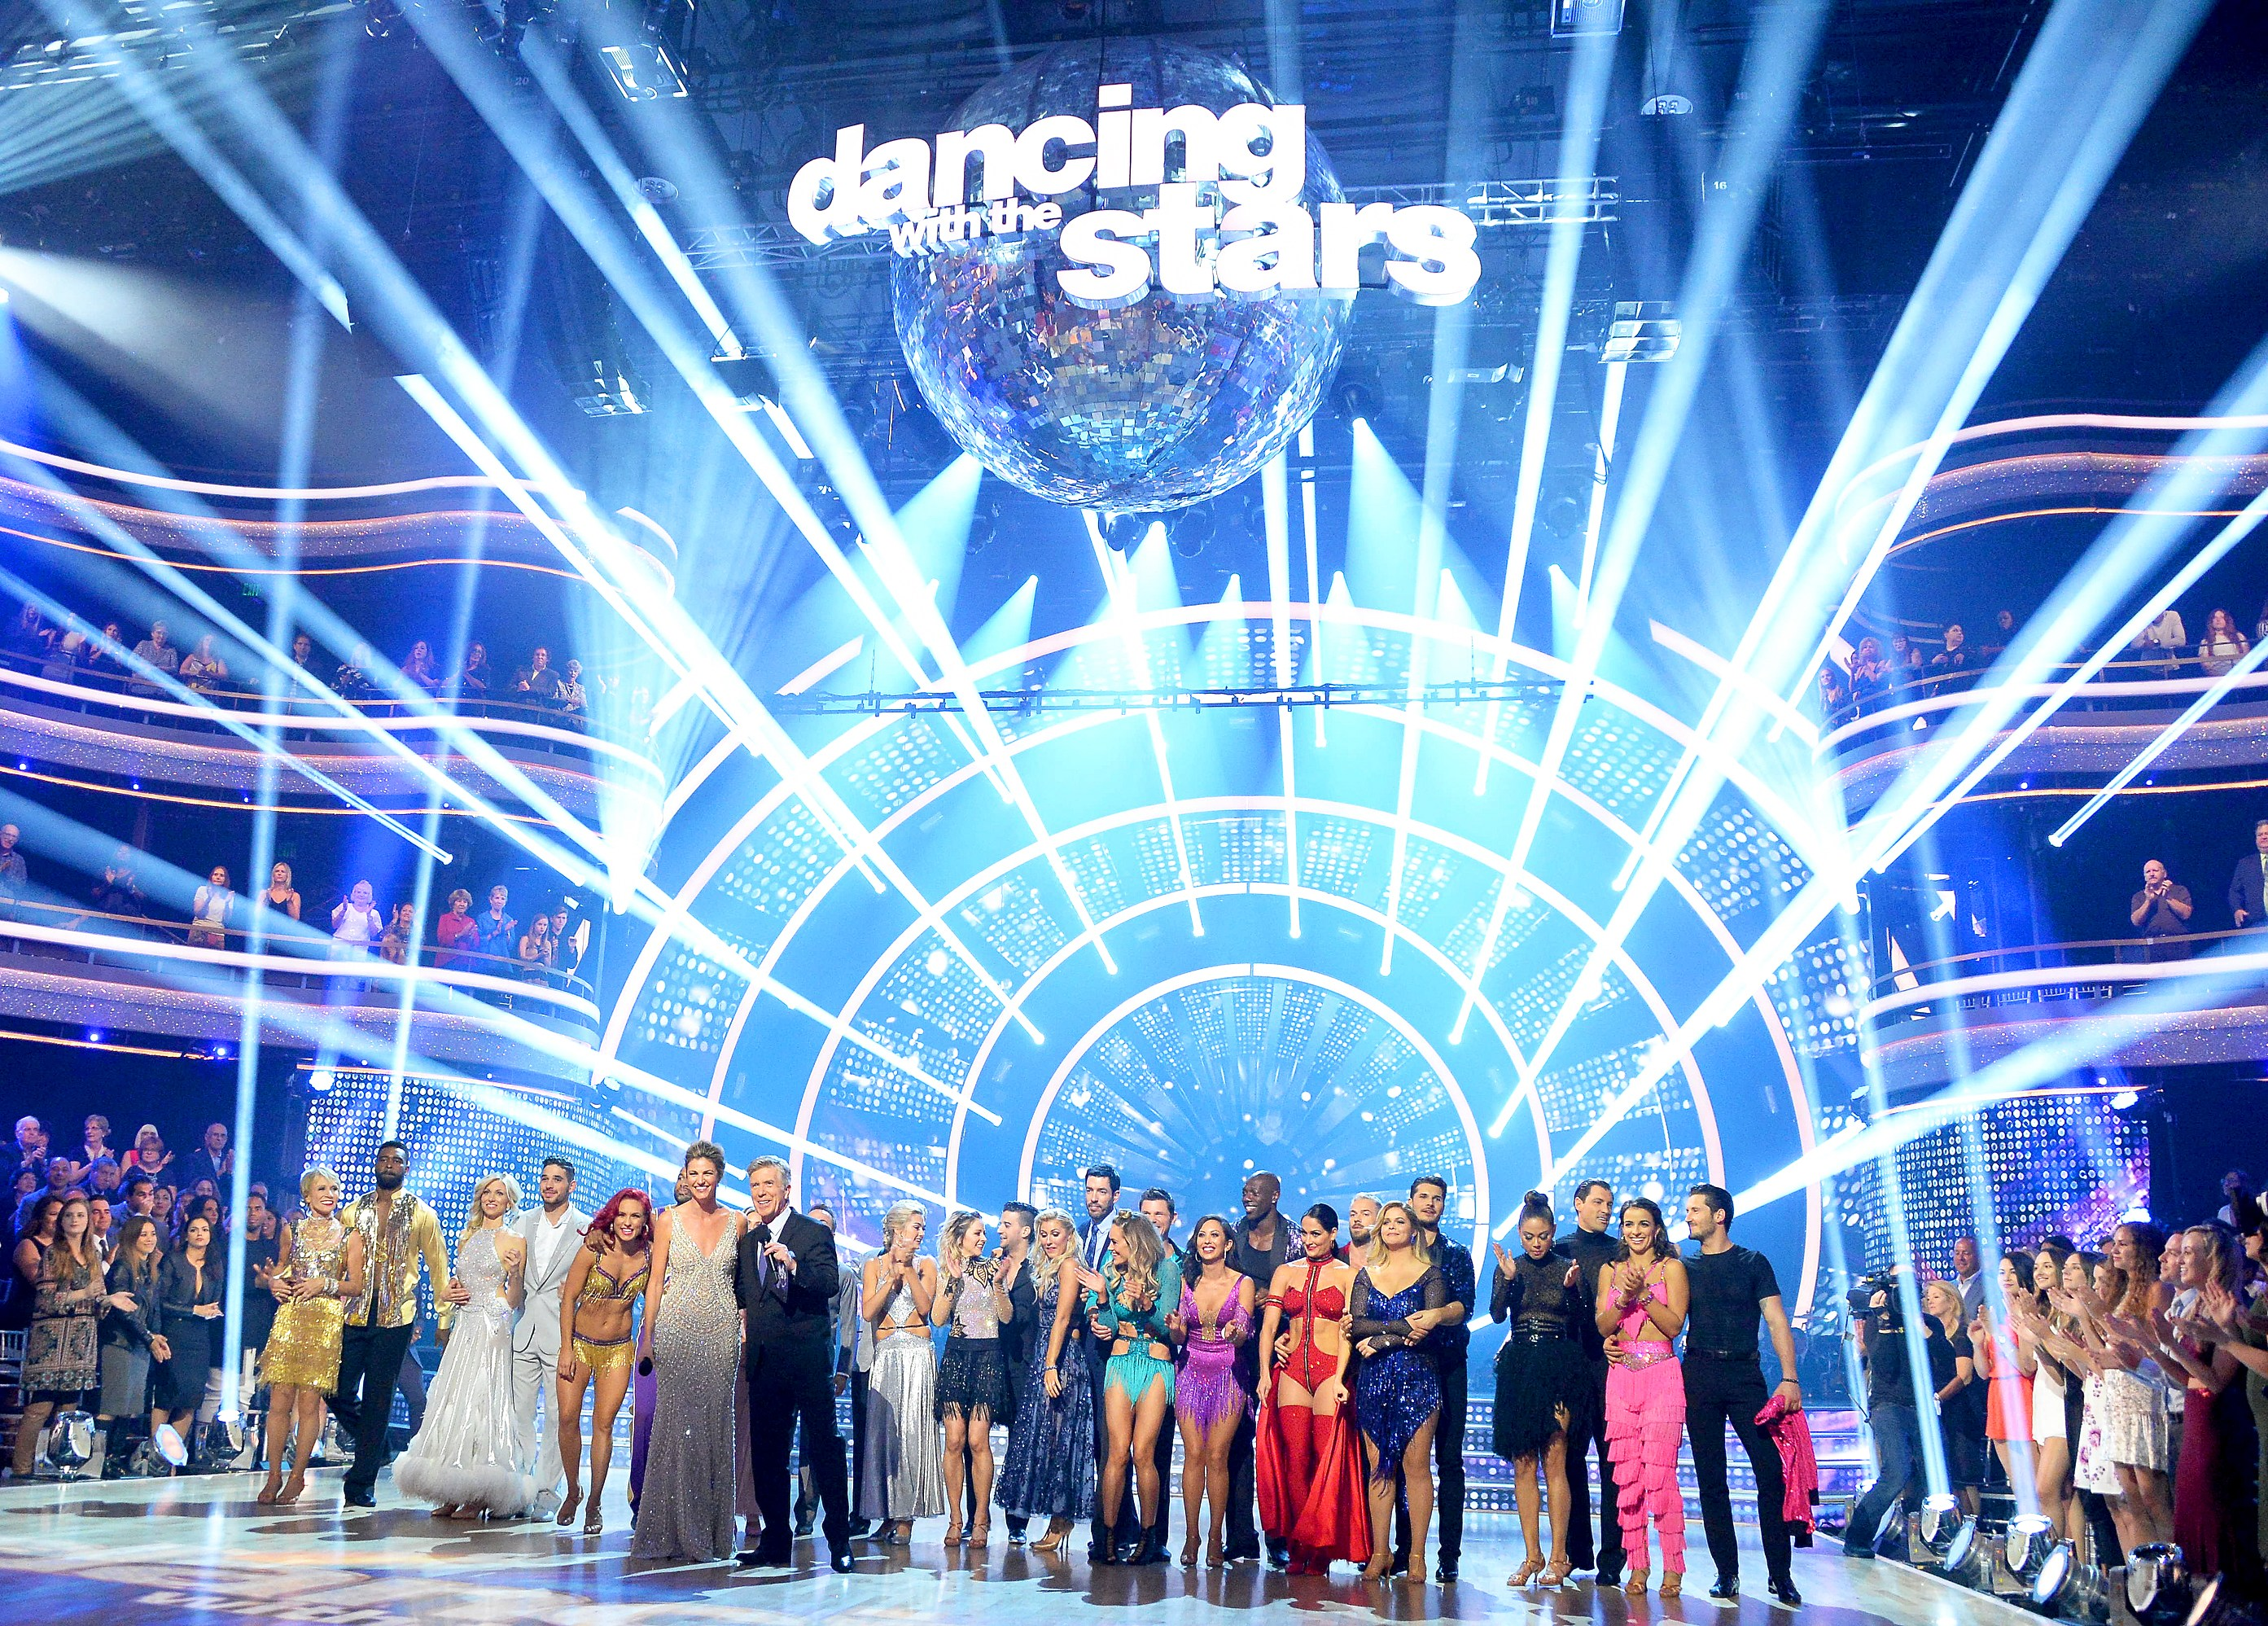 'Dancing With the Stars': Season 25 cast